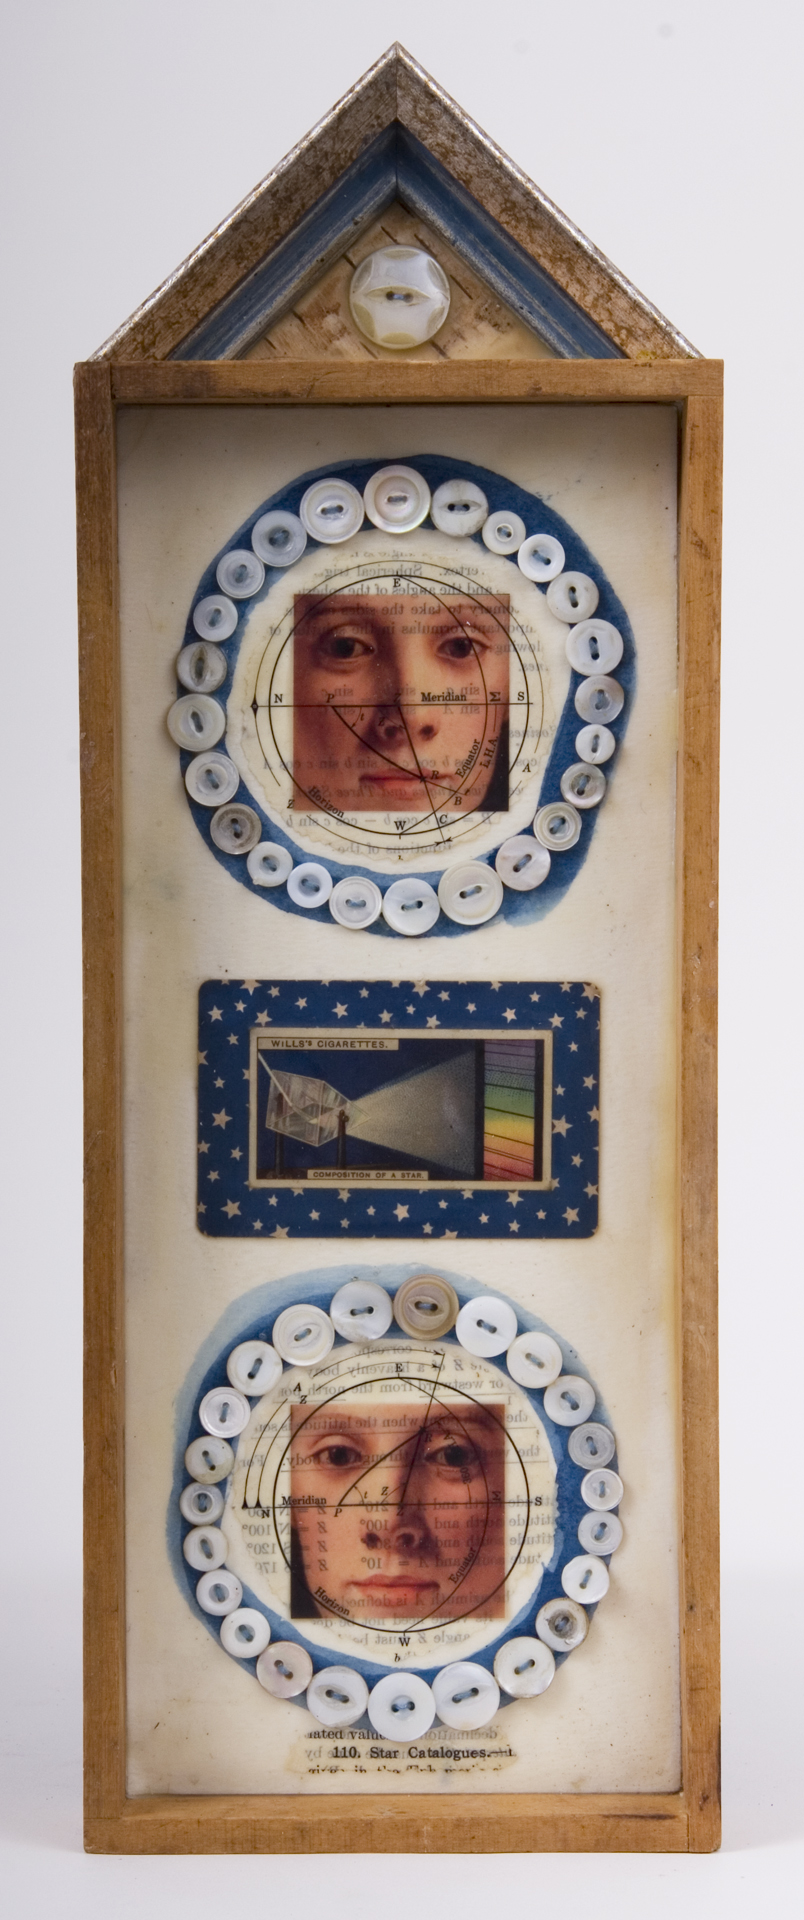 """110. Star Catalogues\""